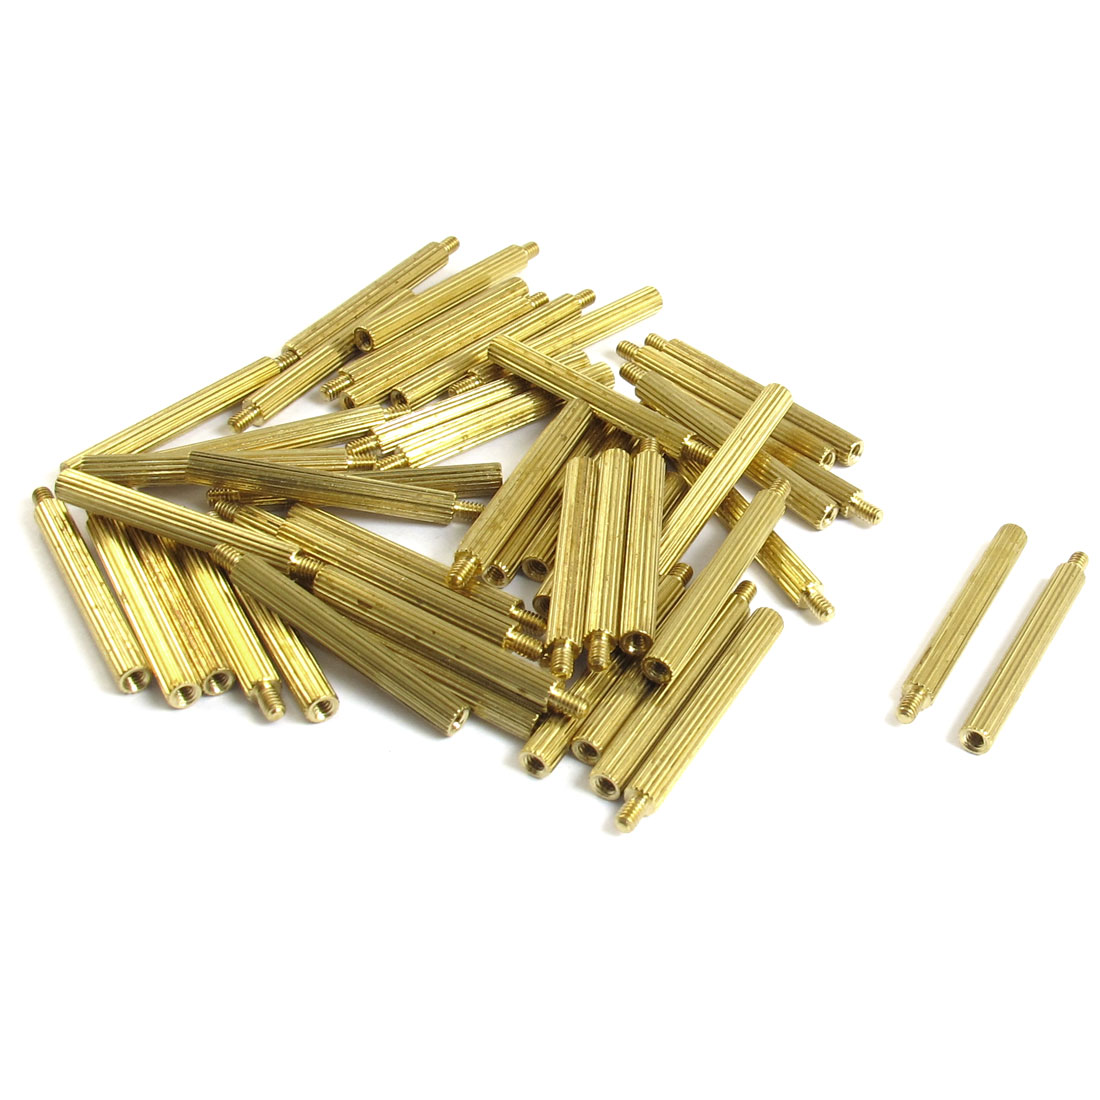 50 Pcs Male to Female Thread Brass Pillars Standoff Spacer M2x25mmx28mm